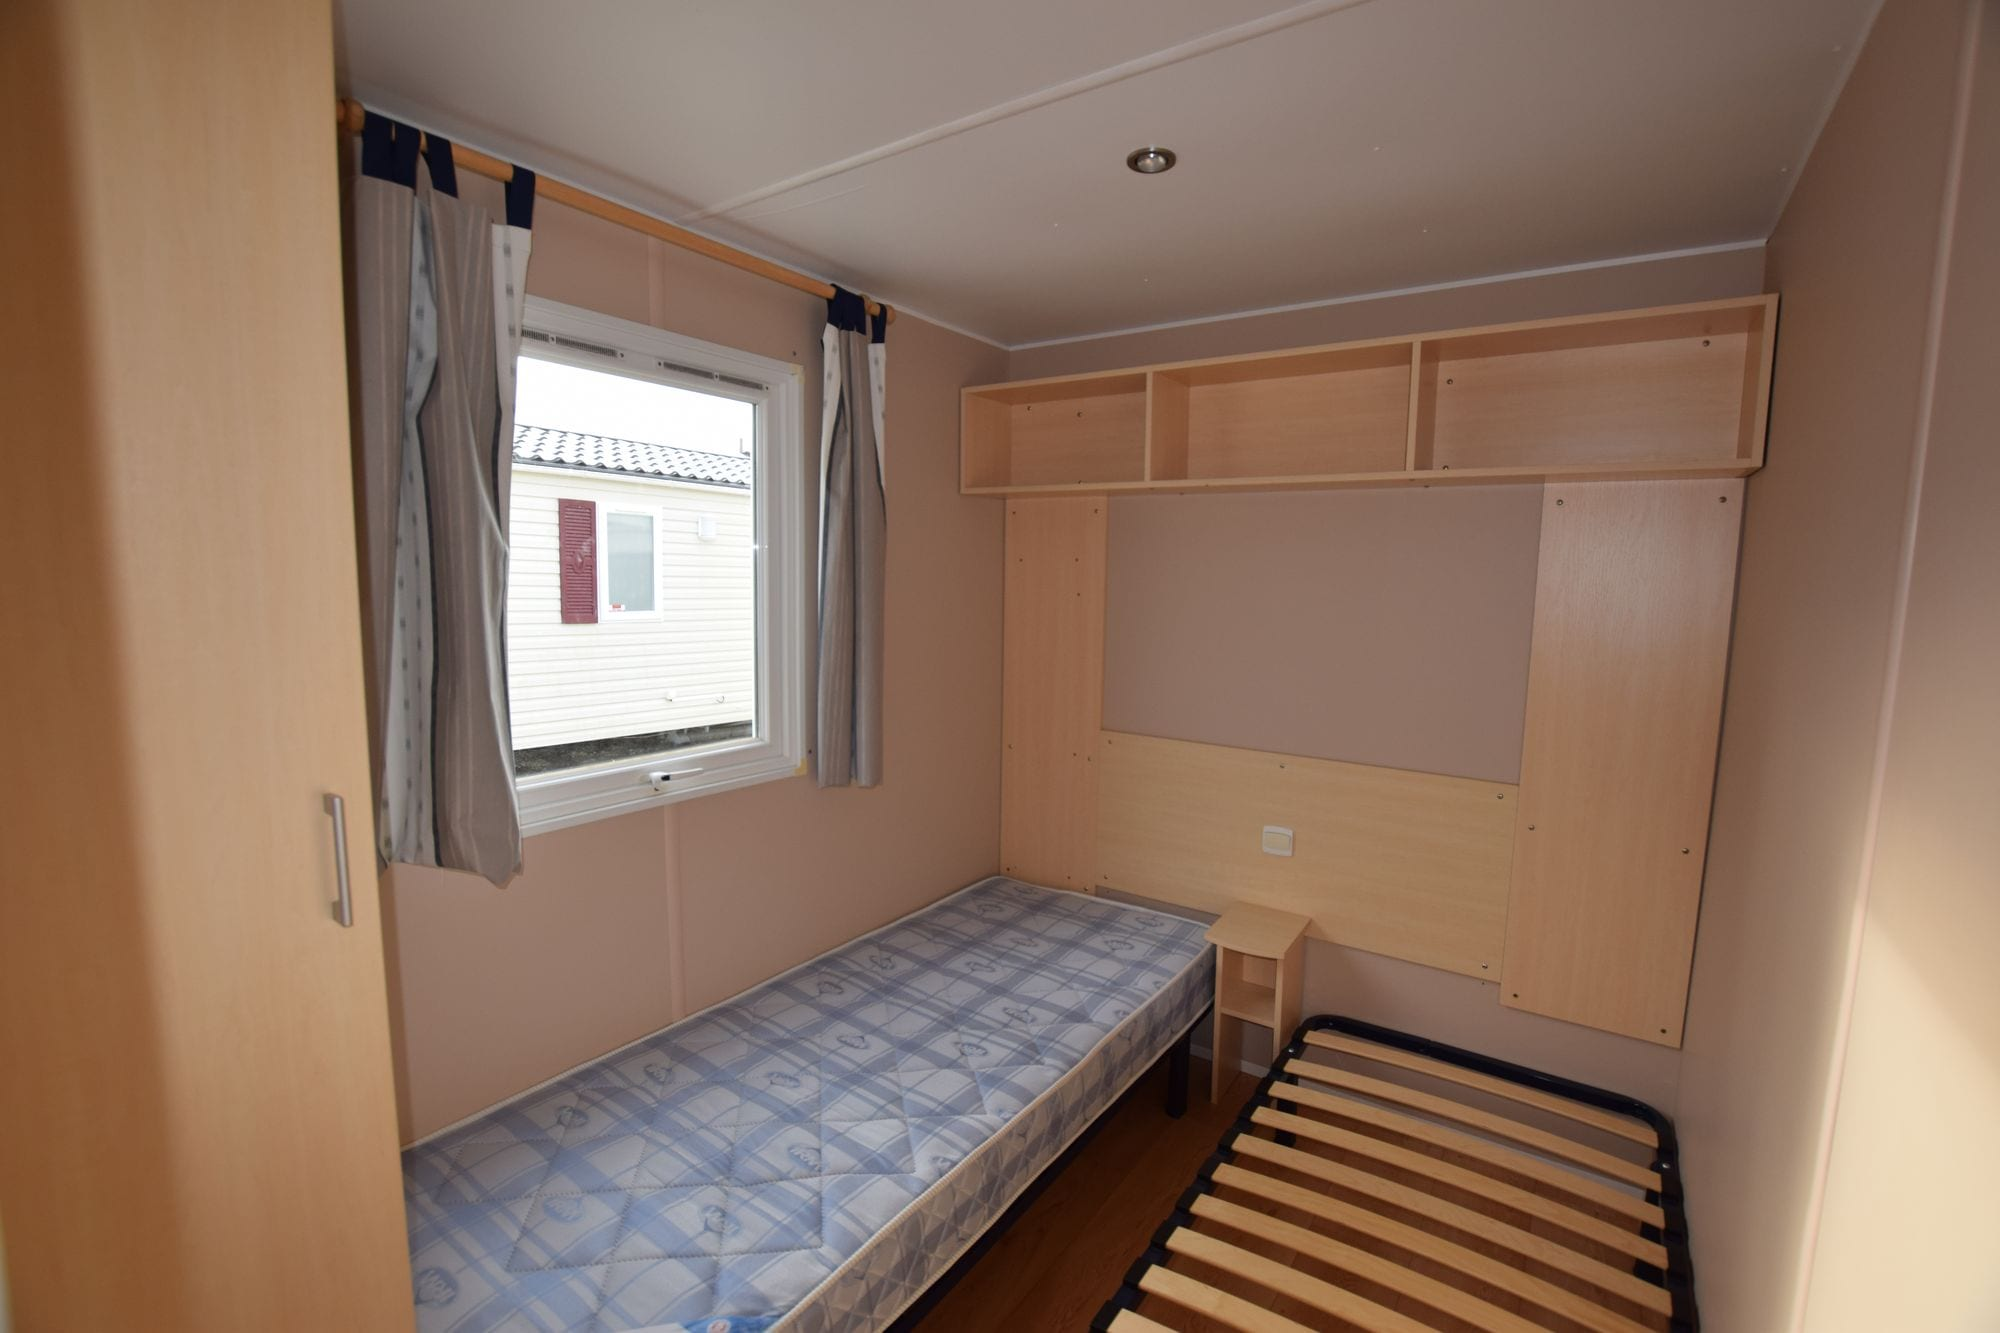 irm sup octalia 2006 mobilhome d 39 occasion 12 000 zen mobil home. Black Bedroom Furniture Sets. Home Design Ideas